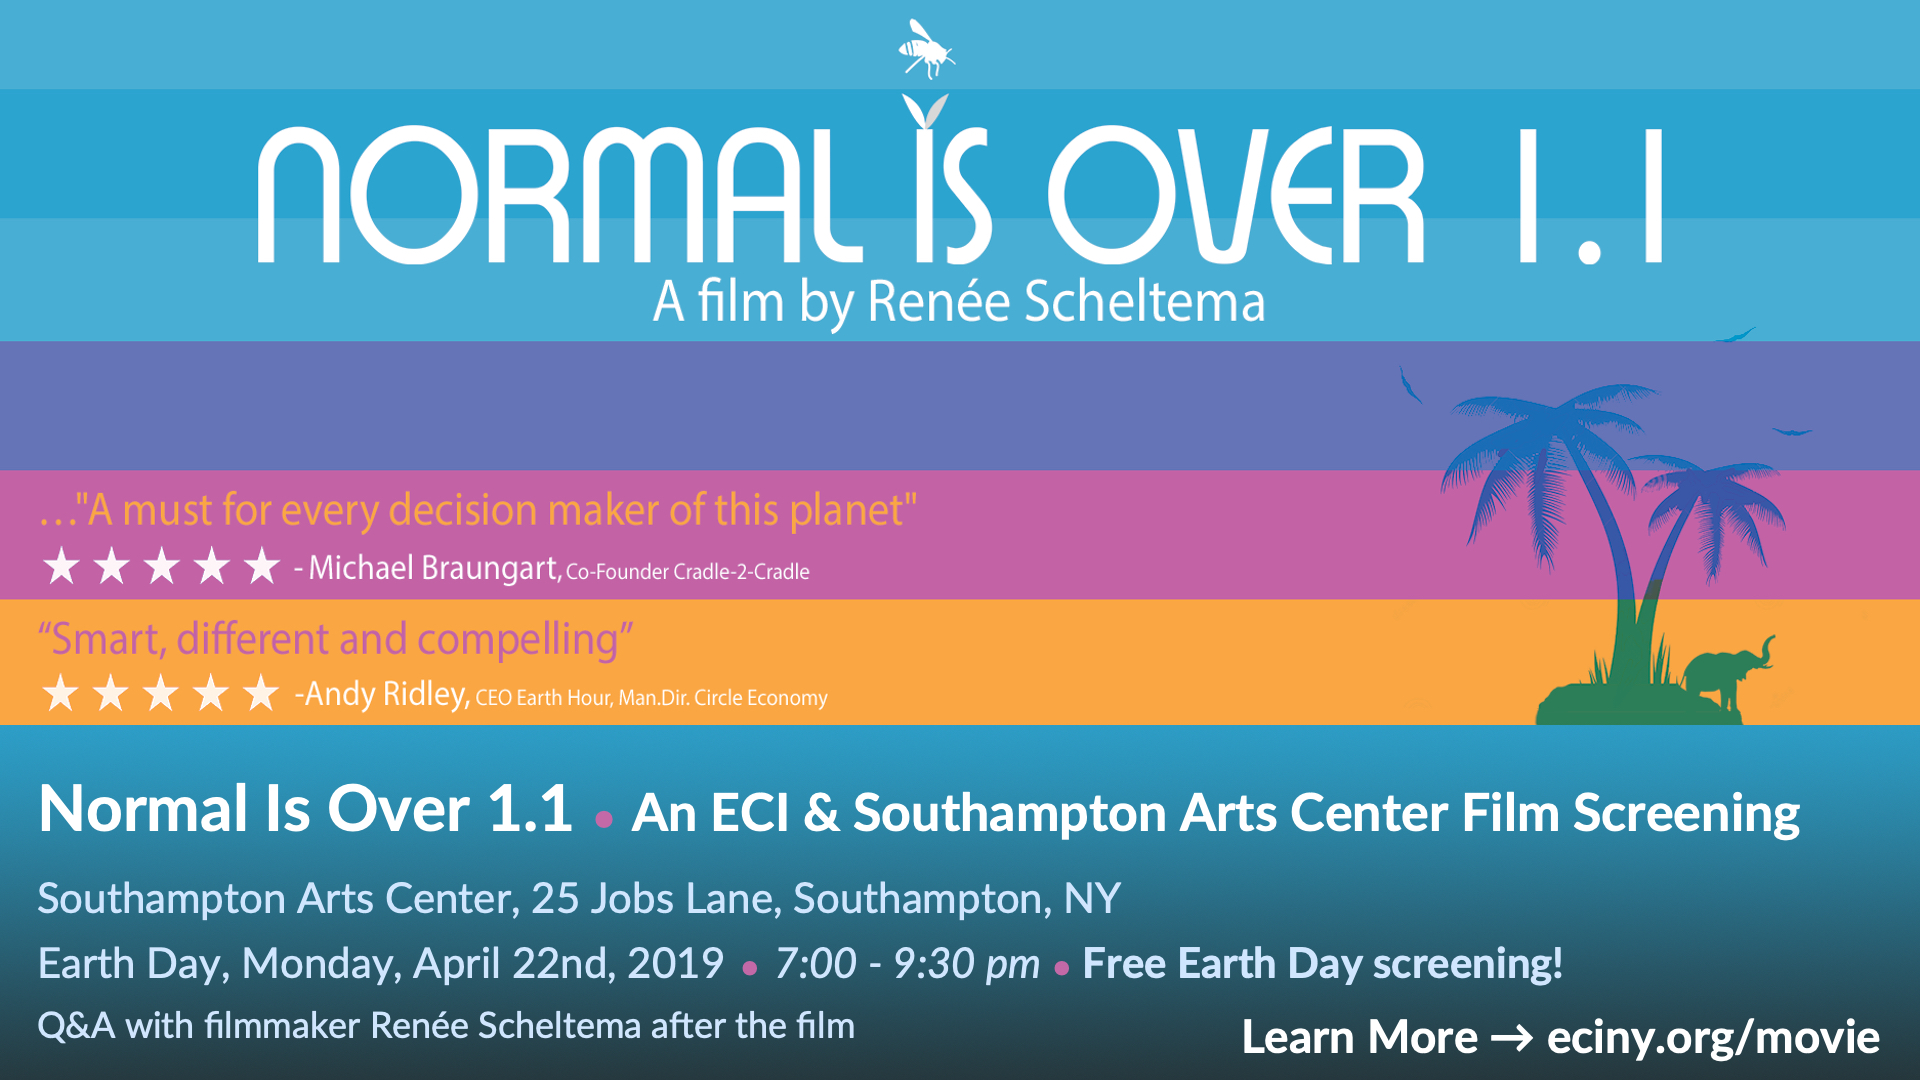 Normal Is Over film screening - Apr 22nd, 2019 - FB cover 1920x1080.jpg